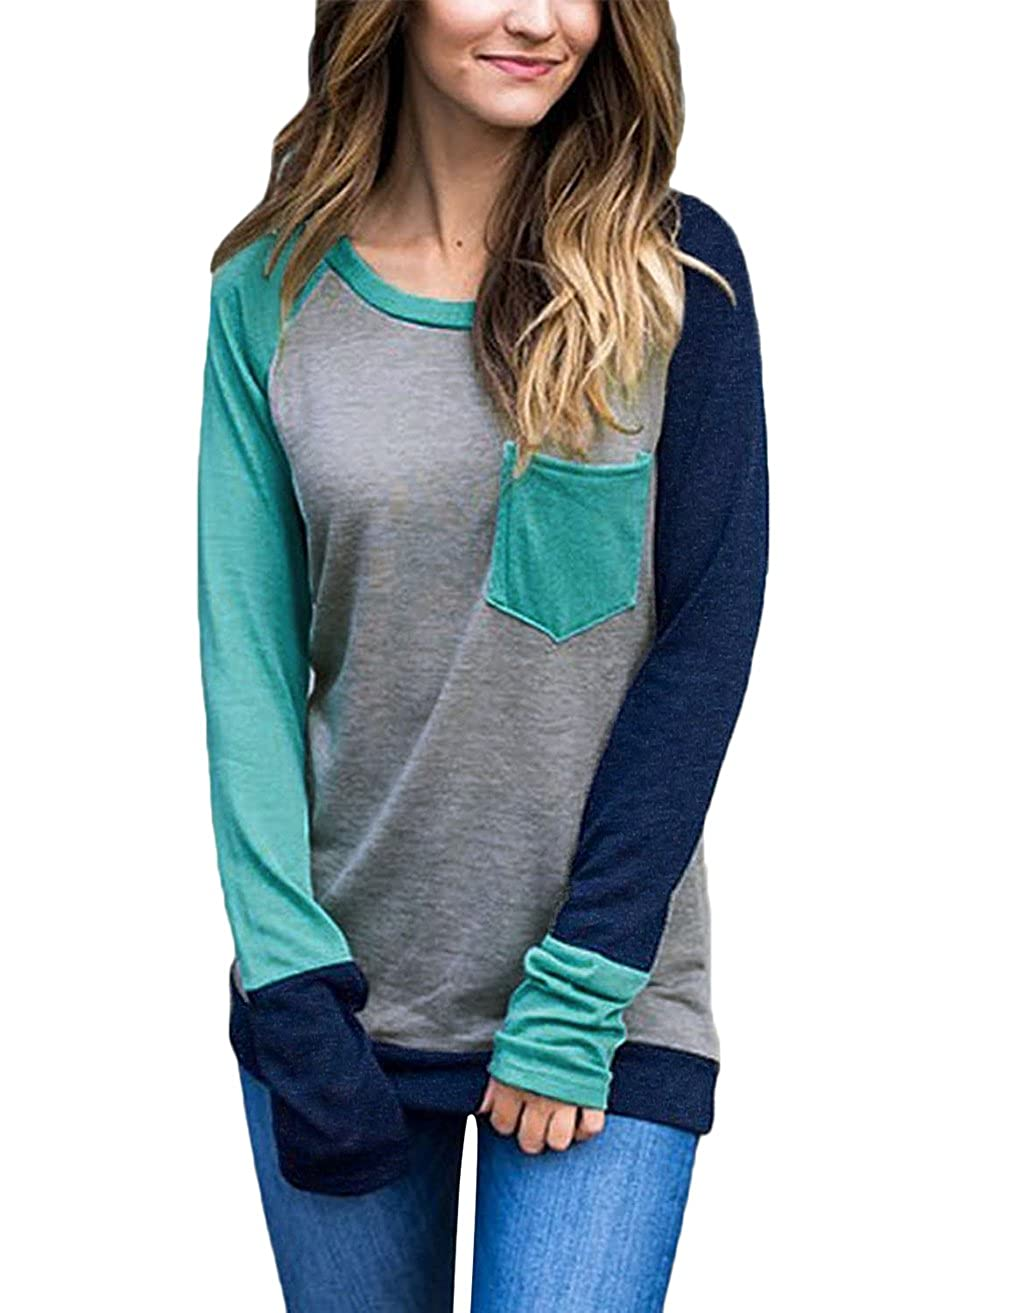 Women's Soft Color Block Baseball Long Sleeve Pullover Tunic Top T-Shirts Blouses Top 022*USFBAAM00062[USEM]